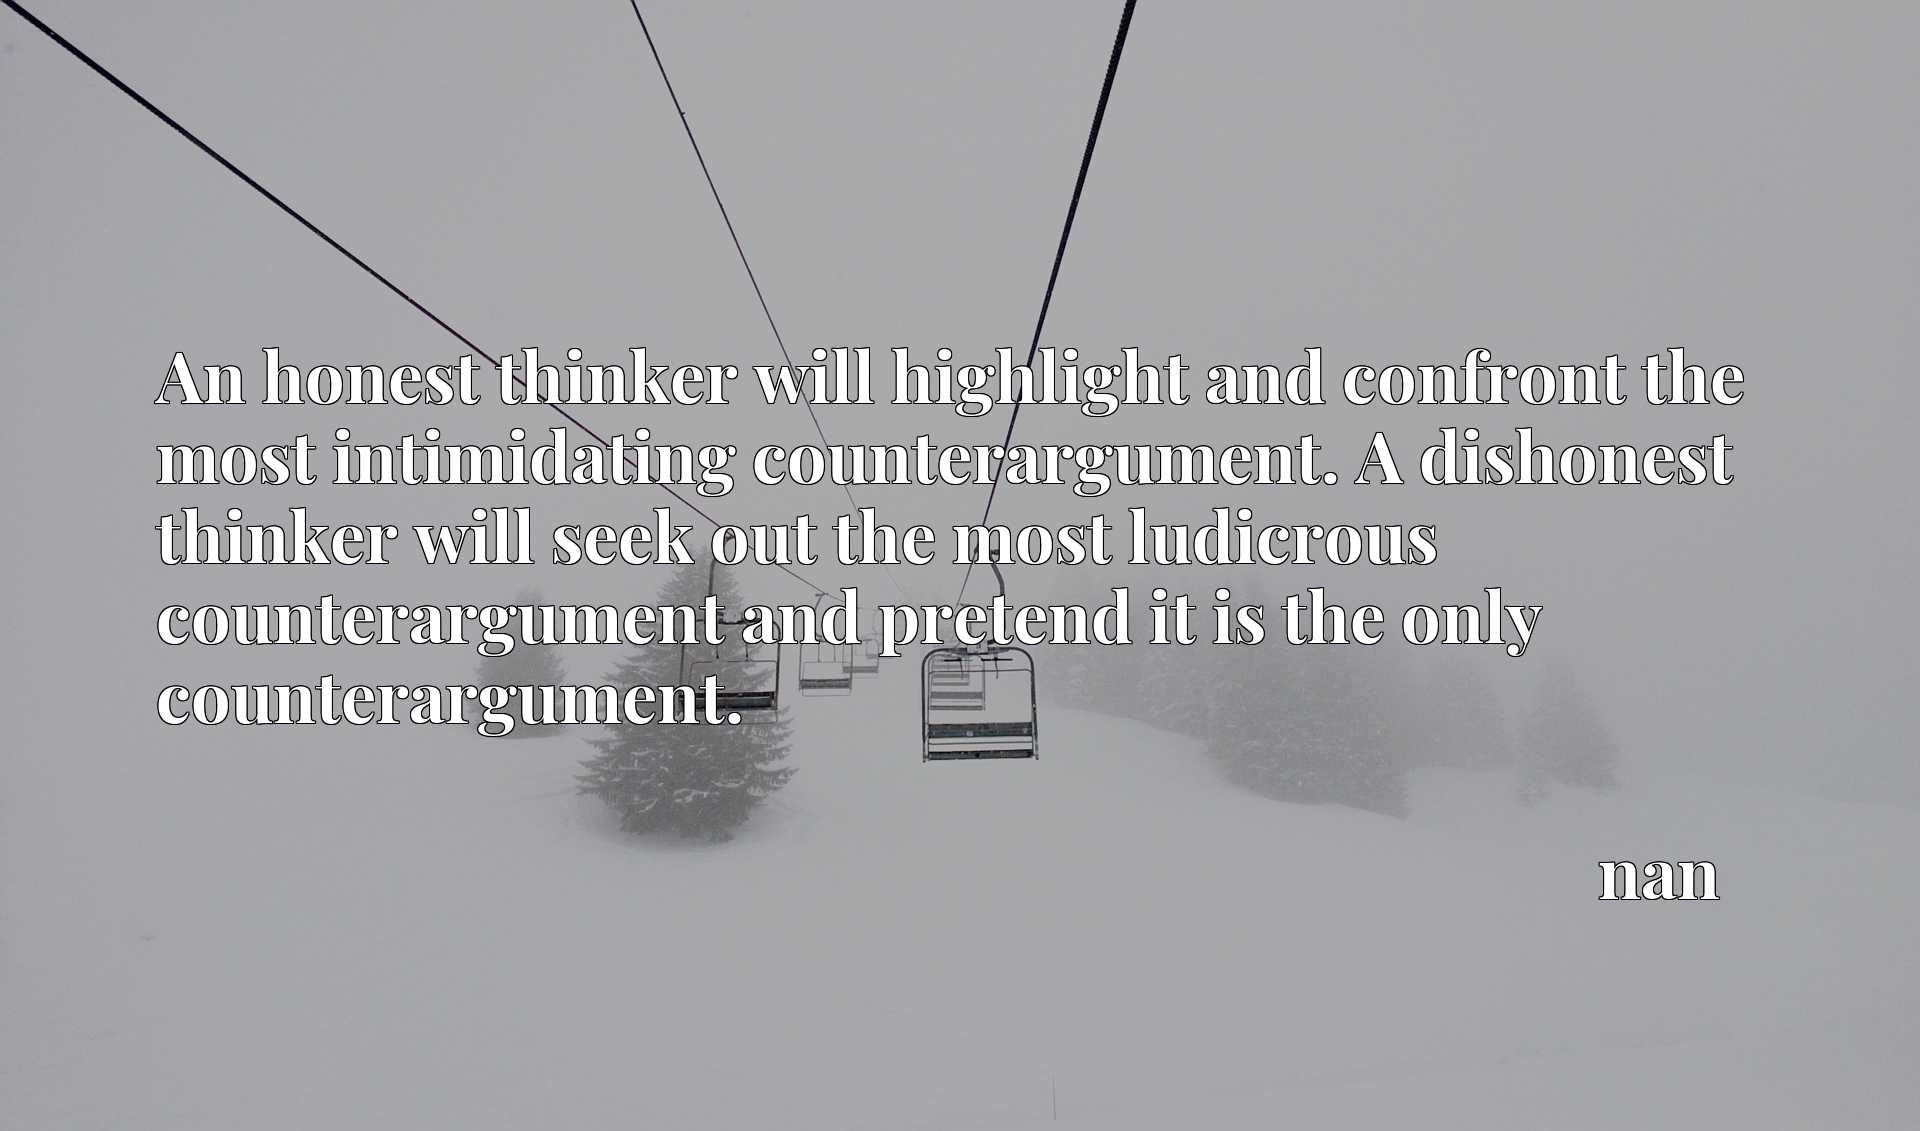 An honest thinker will highlight and confront the most intimidating counterargument. A dishonest thinker will seek out the most ludicrous counterargument and pretend it is the only counterargument.